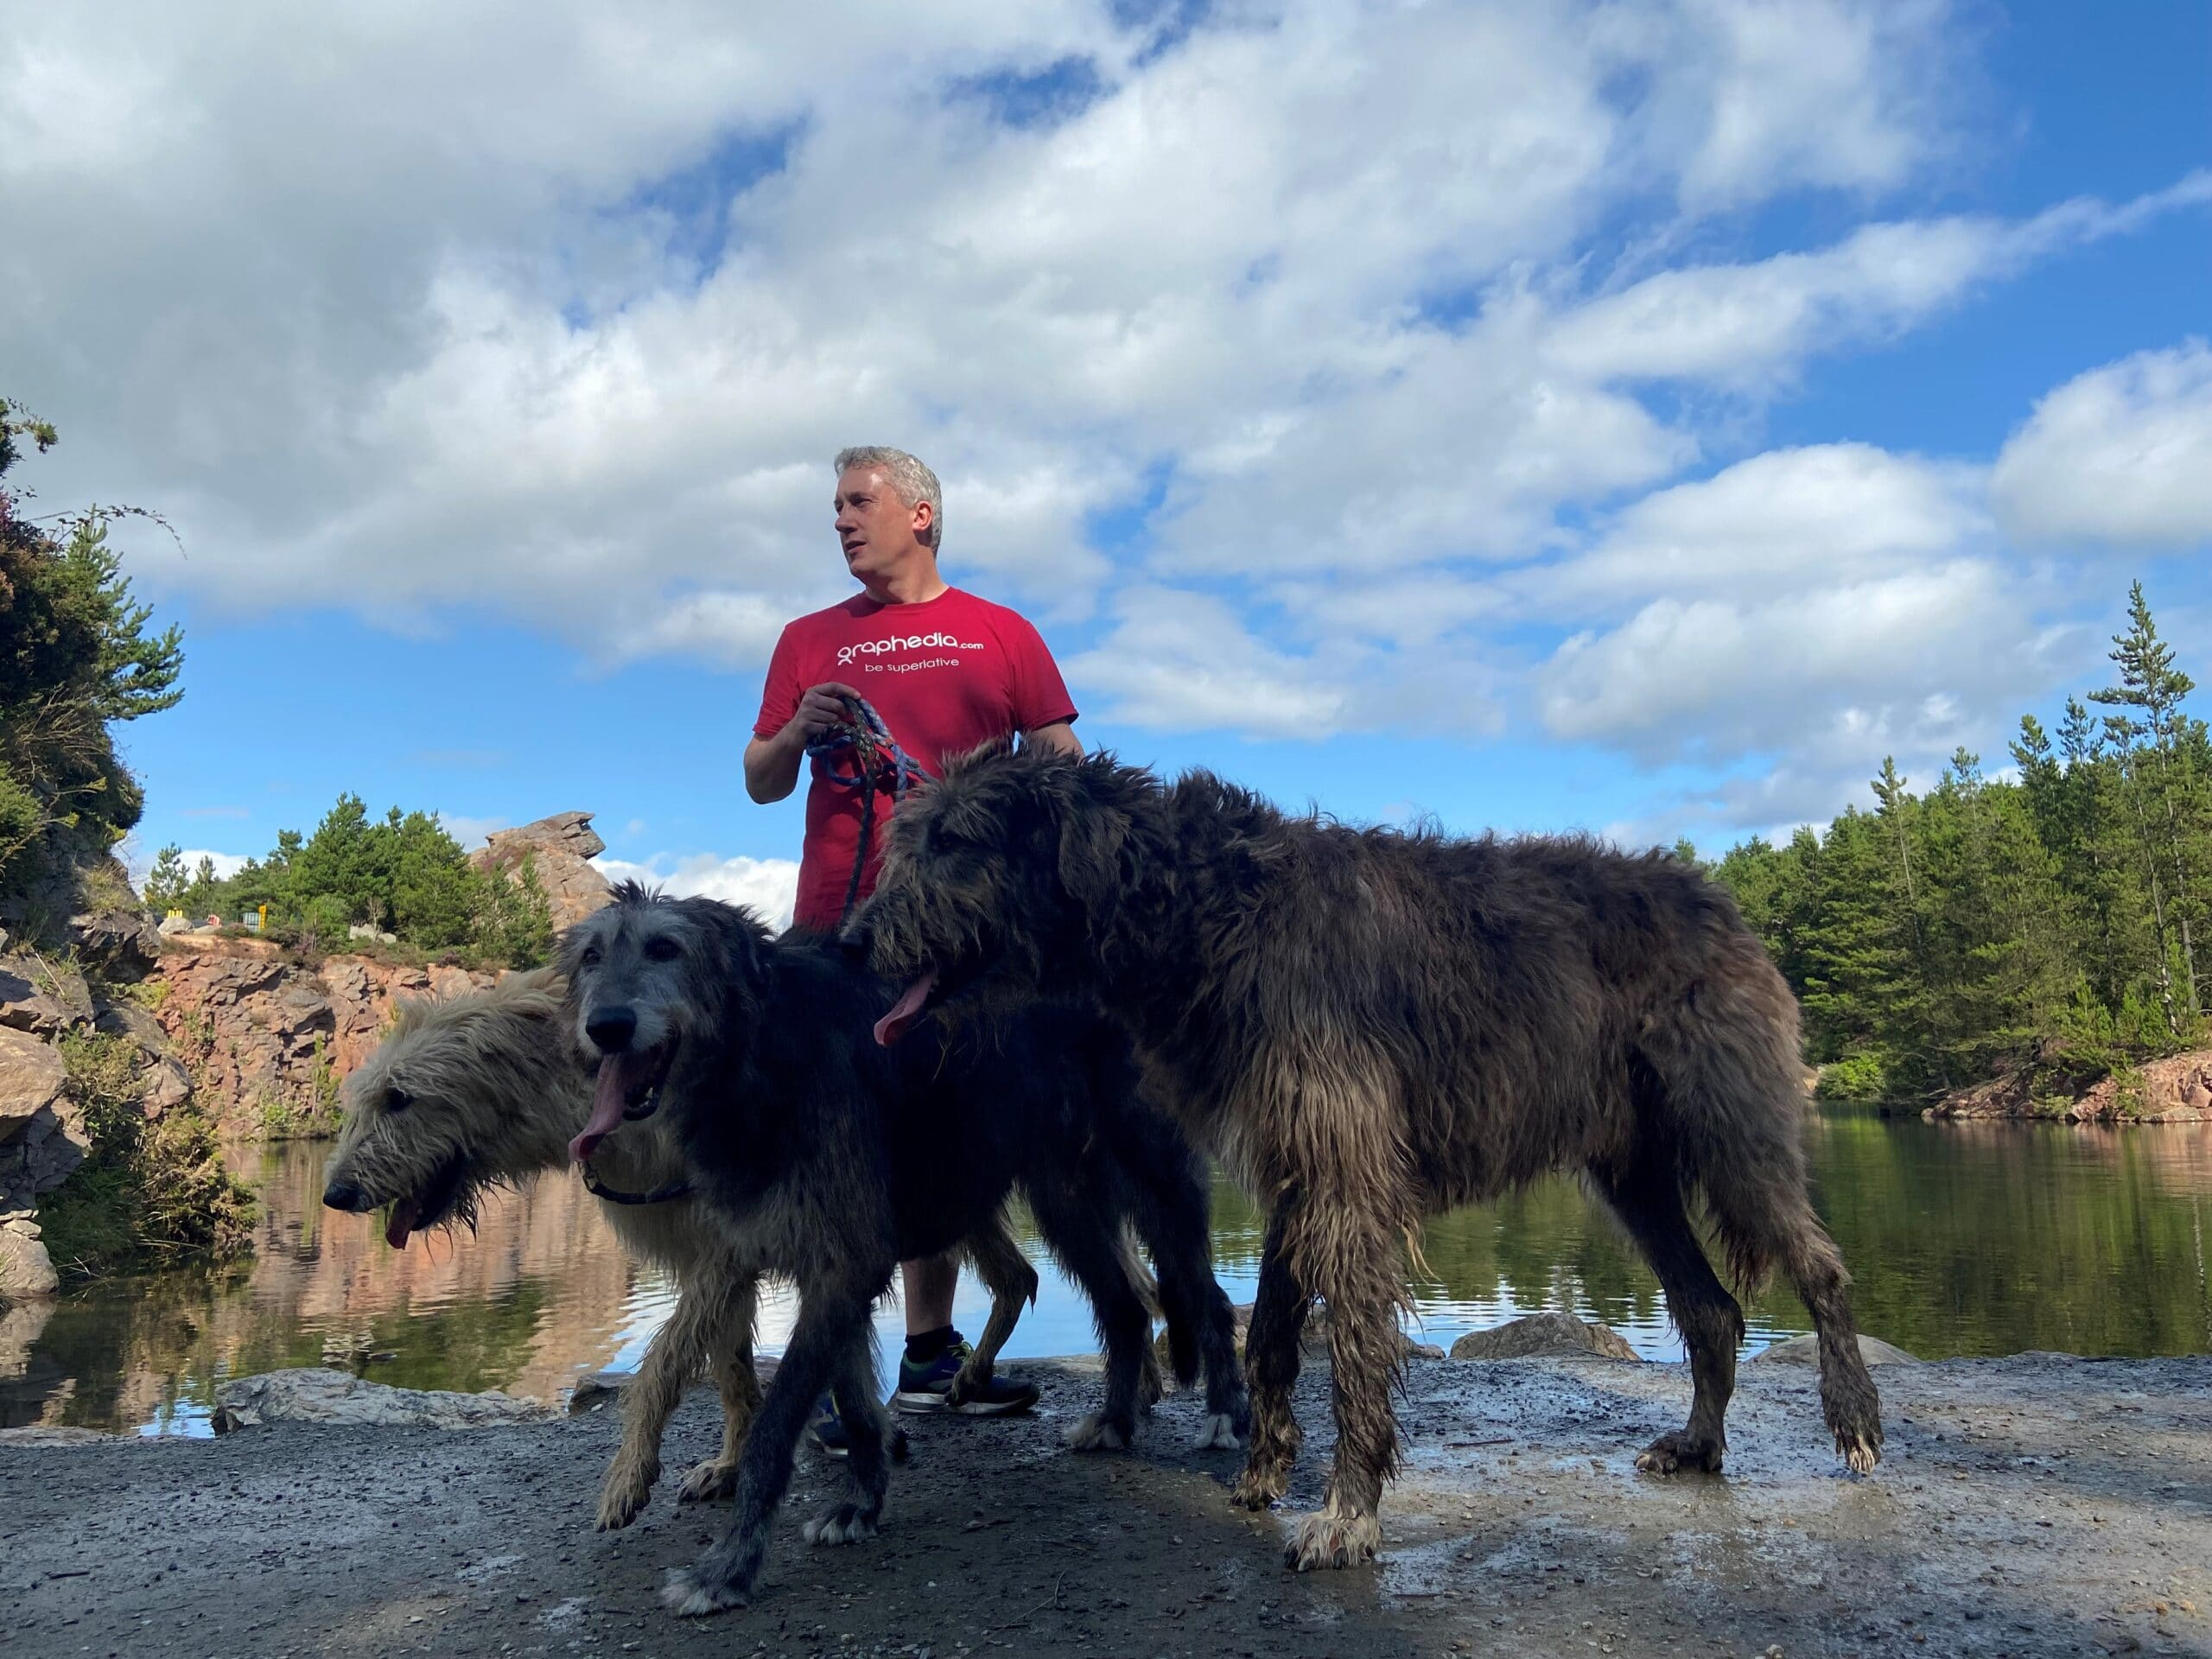 Niall Reck (graphedia) with 3 Irish Wolfhounds